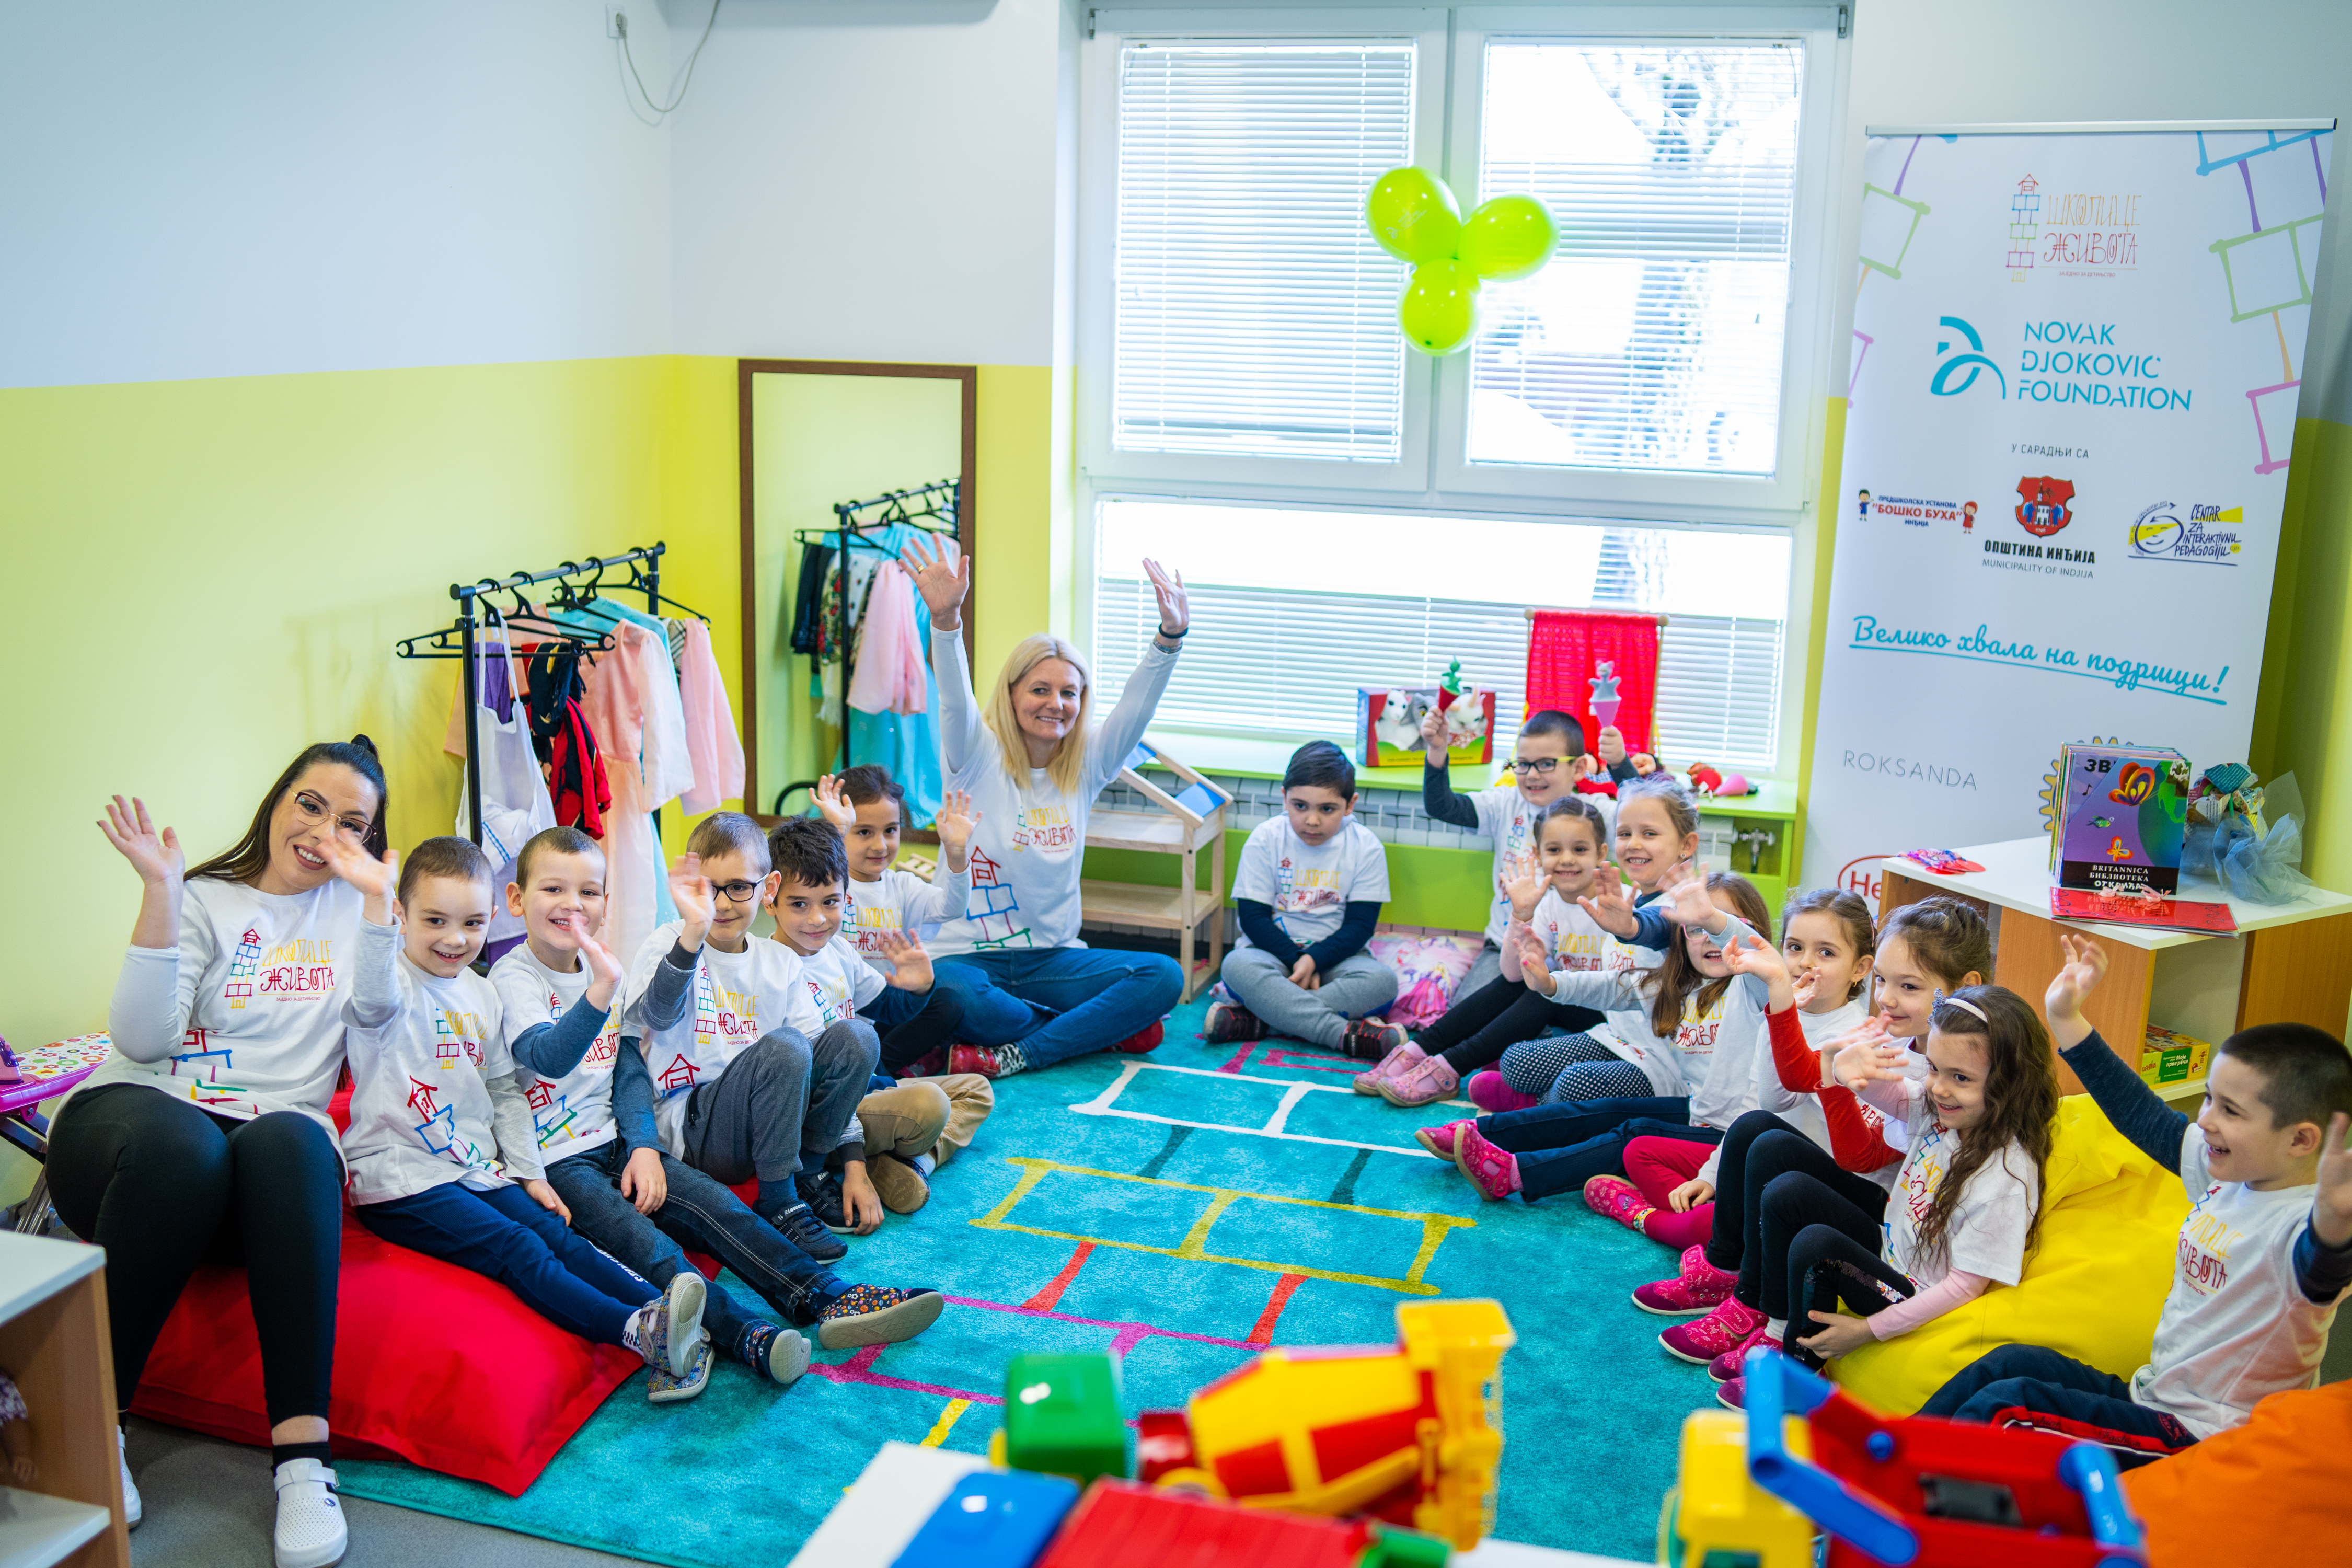 Preschool teacher Ana Surla and her colleague with children from the School of Life in Ljukovo.